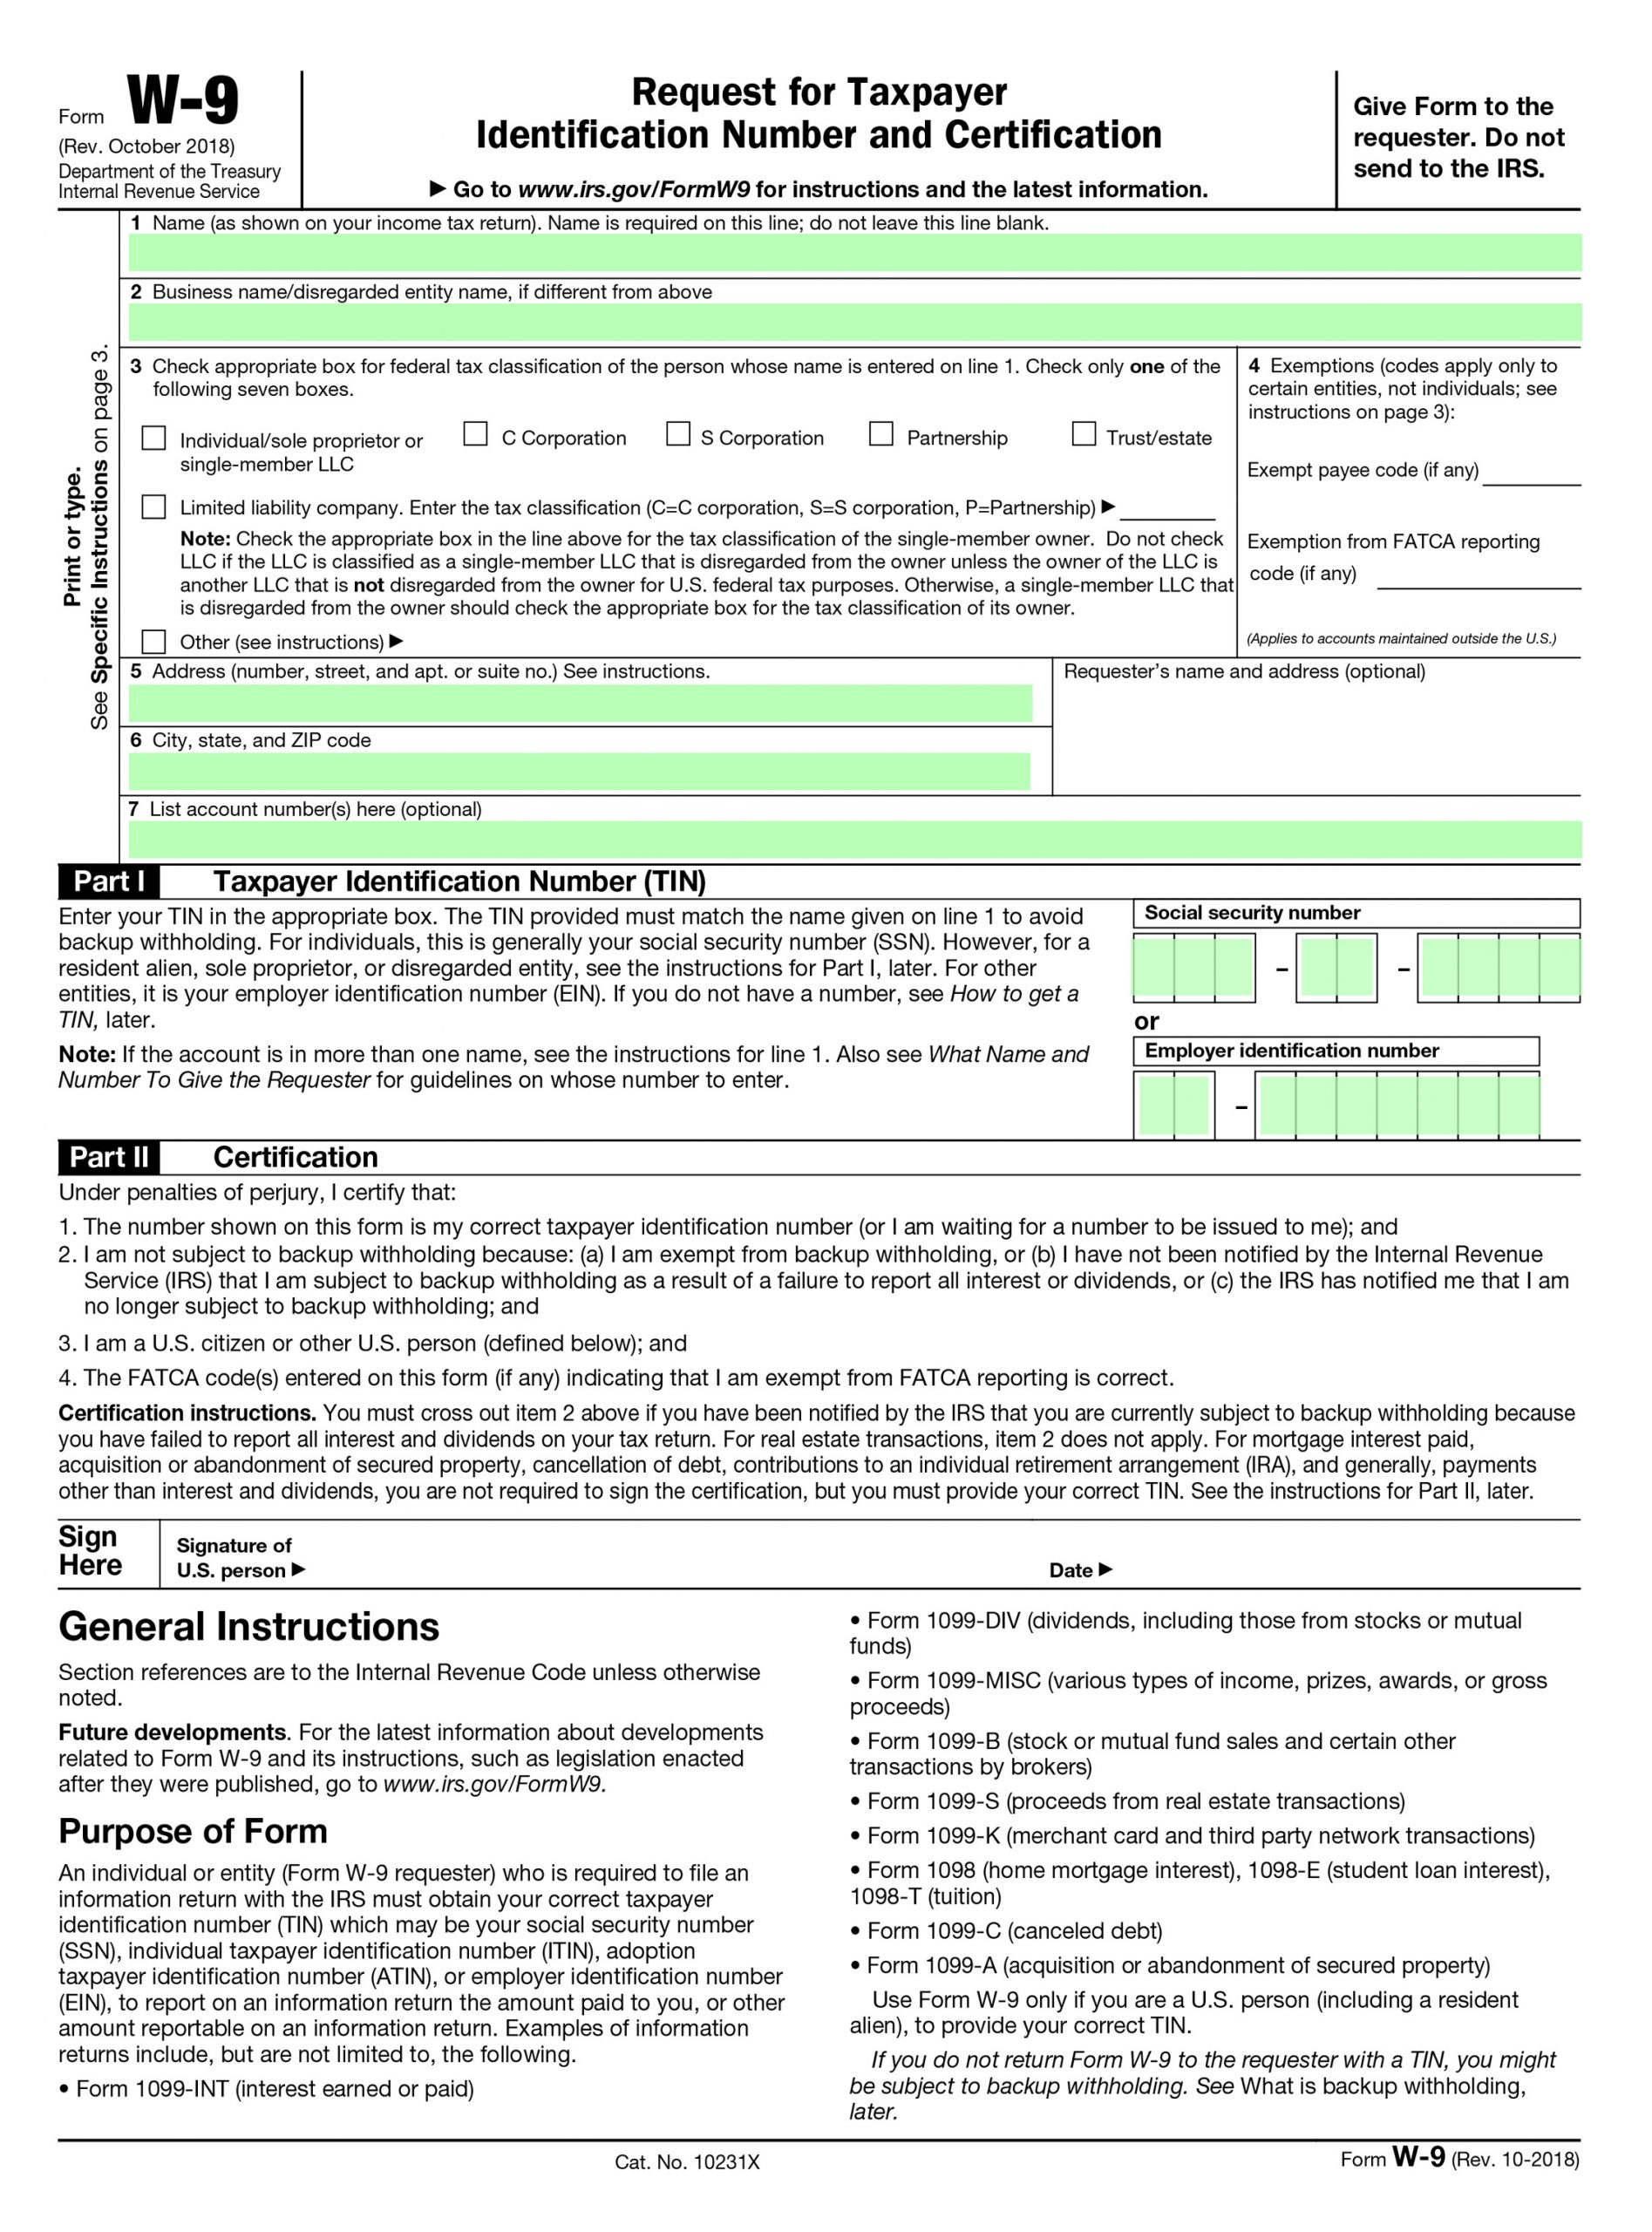 W-9 Form Fillable 2020 | W9 Form Printable regarding Blank W 9 Form To Print